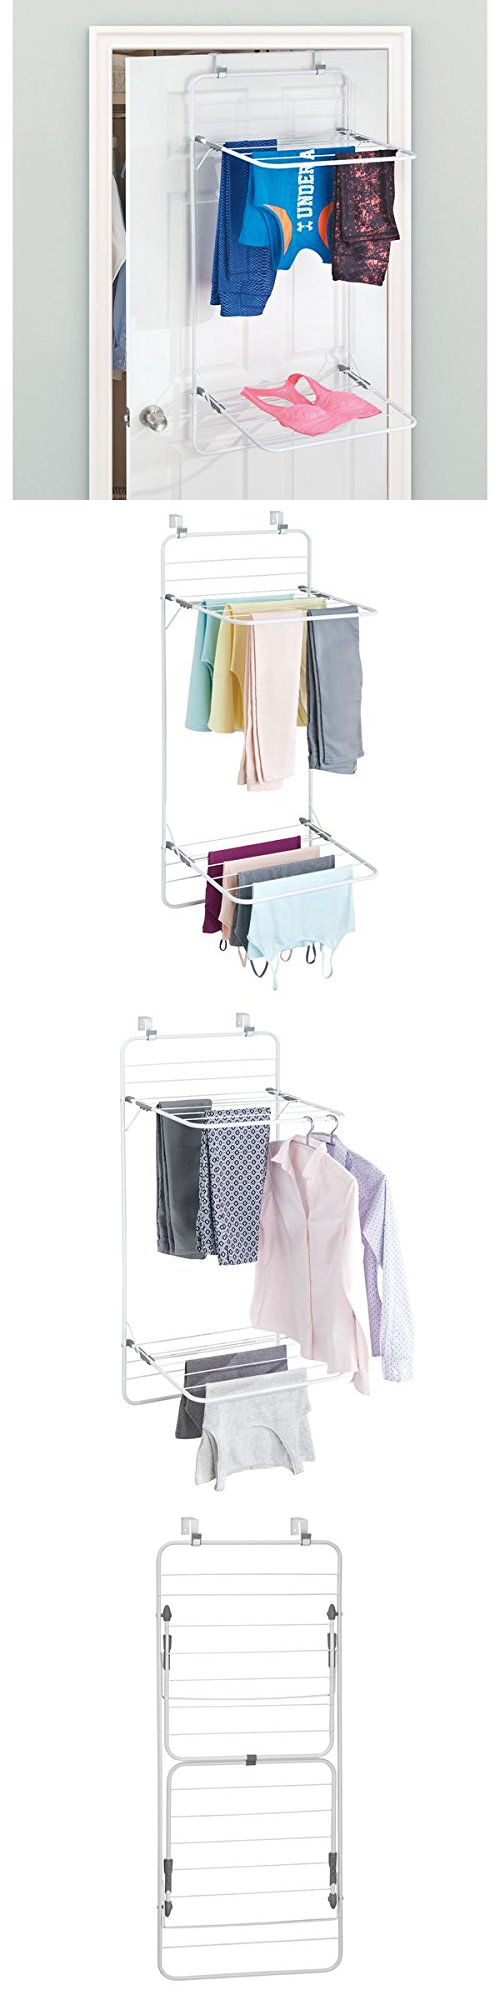 Clotheslines and laundry hangers over door rack laundry room